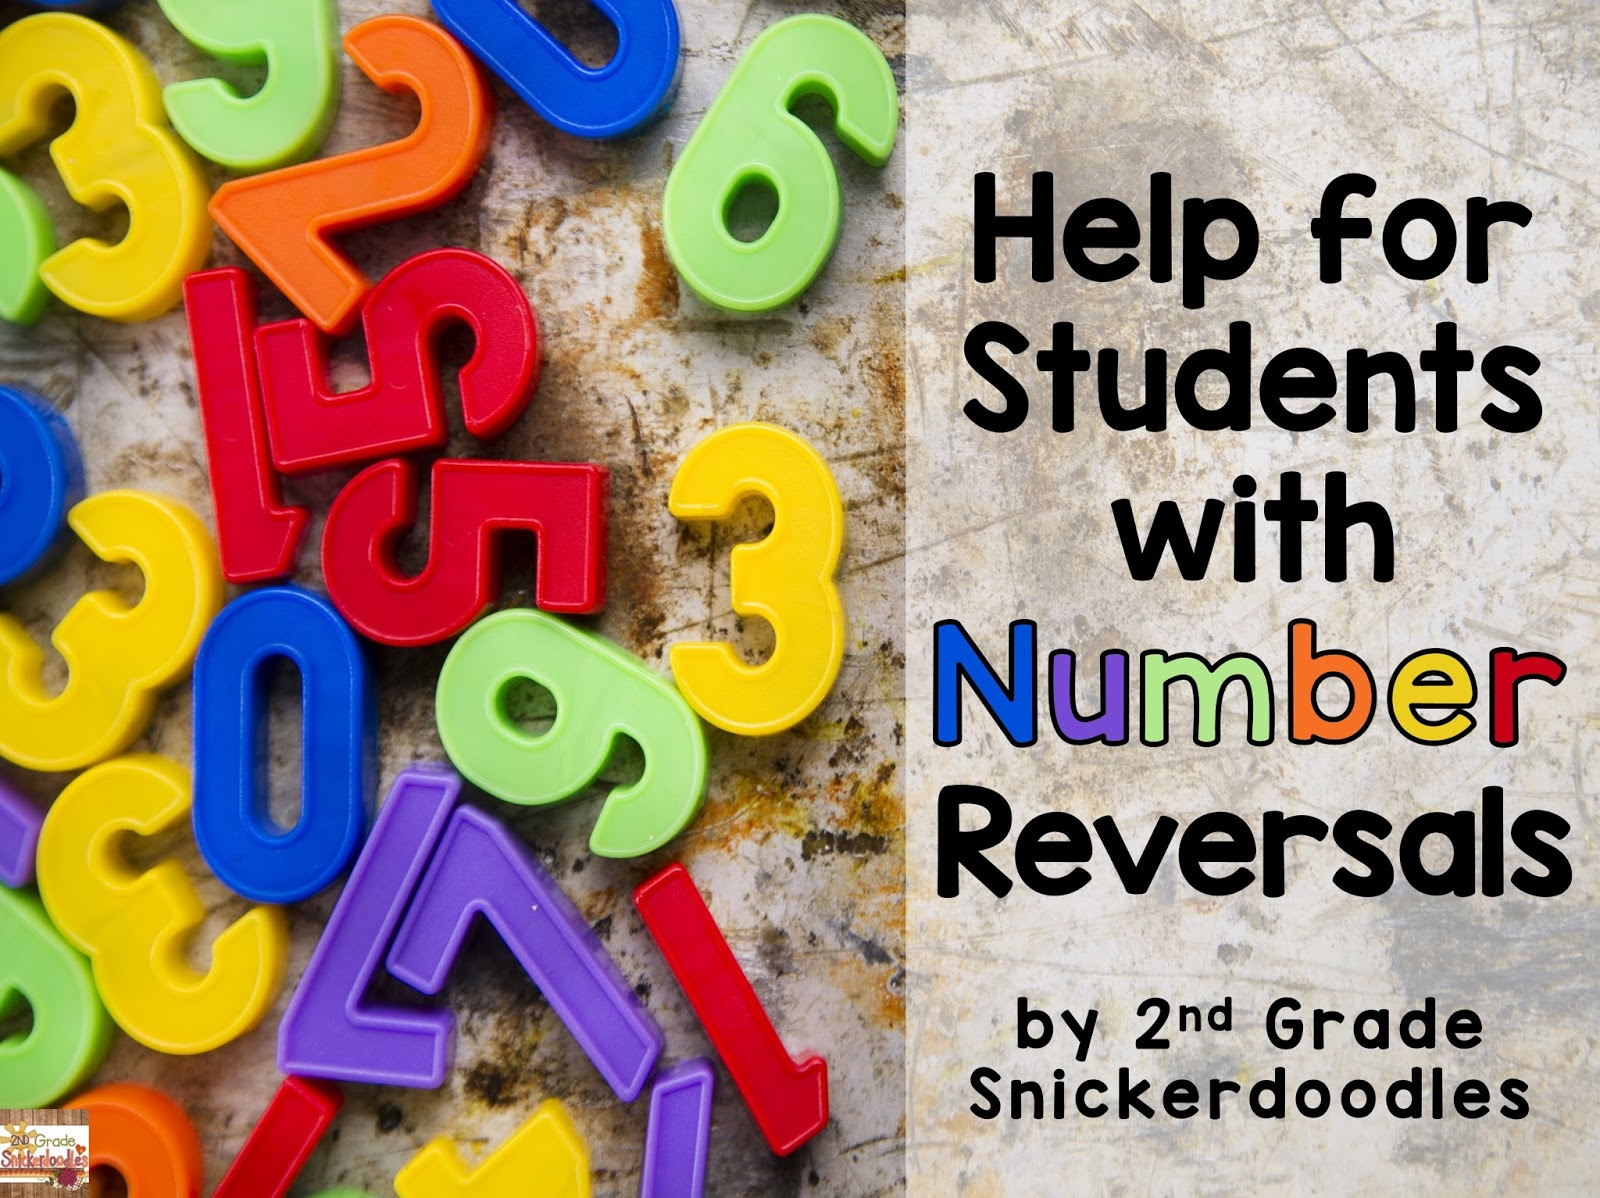 2nd Grade Snickerdoodles Number Reversals